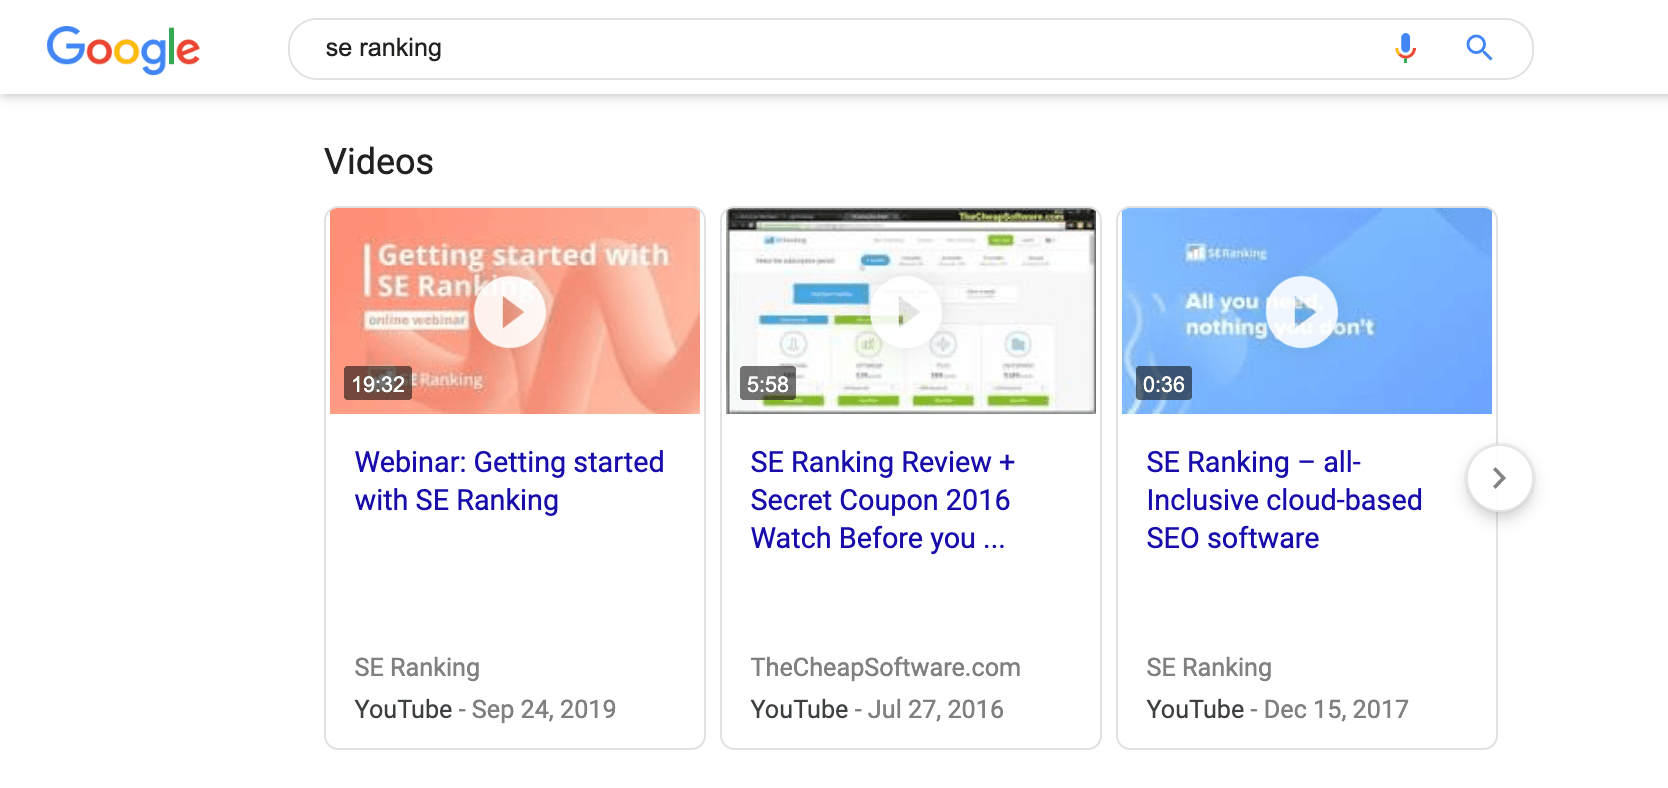 SE Ranking Brand SERP video snippets